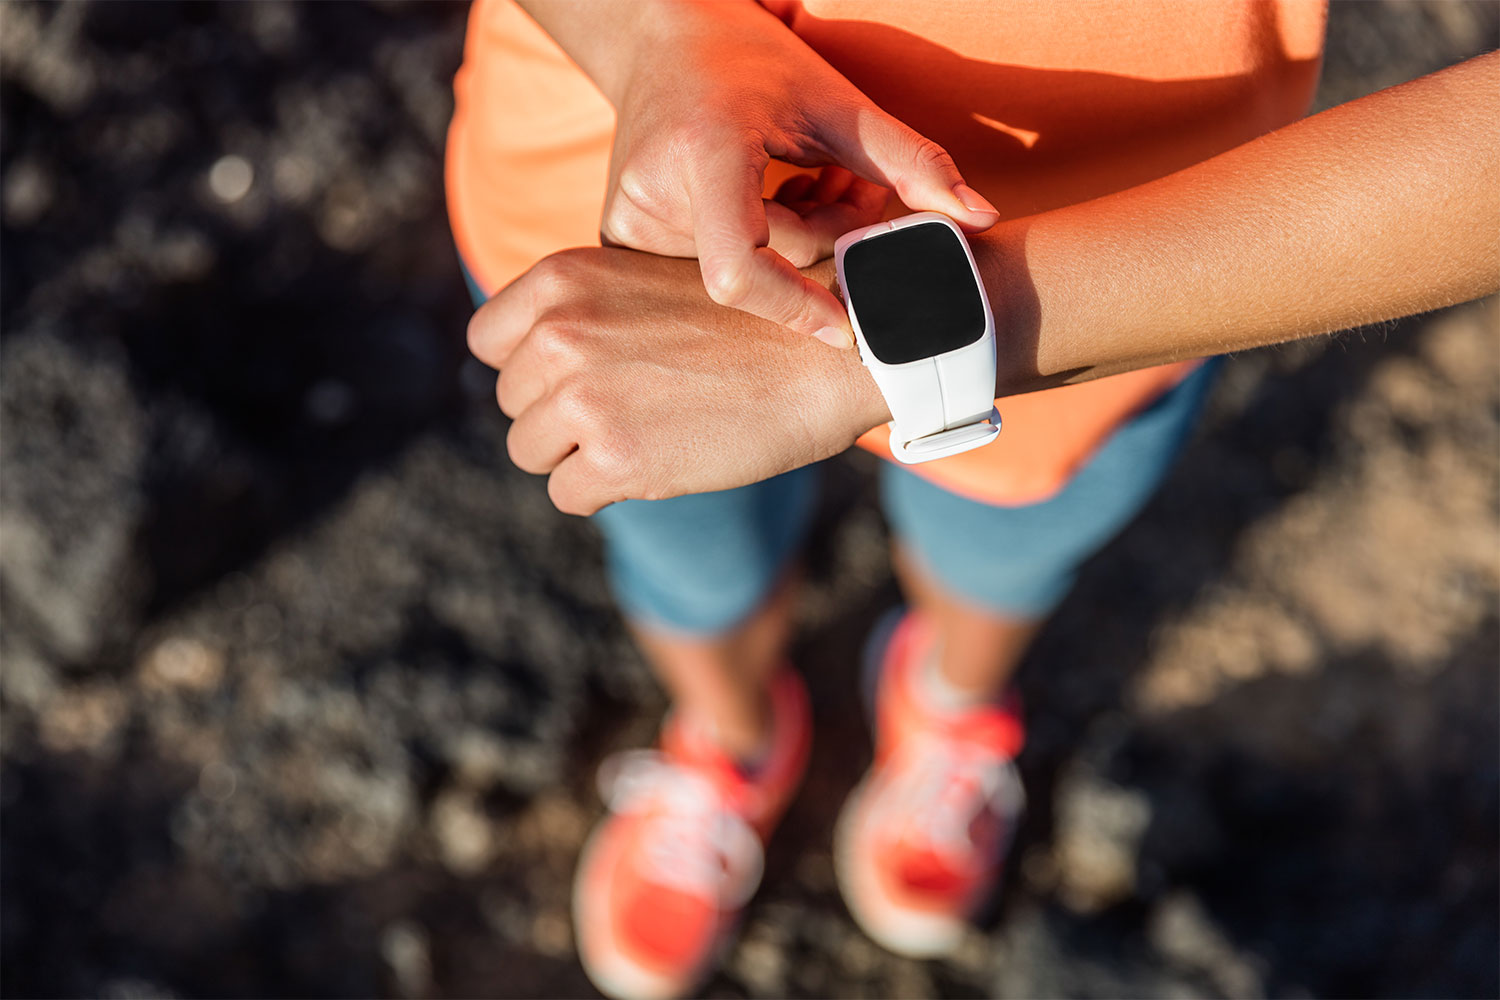 How Wearable Tech Can Help Increase Physical Activity